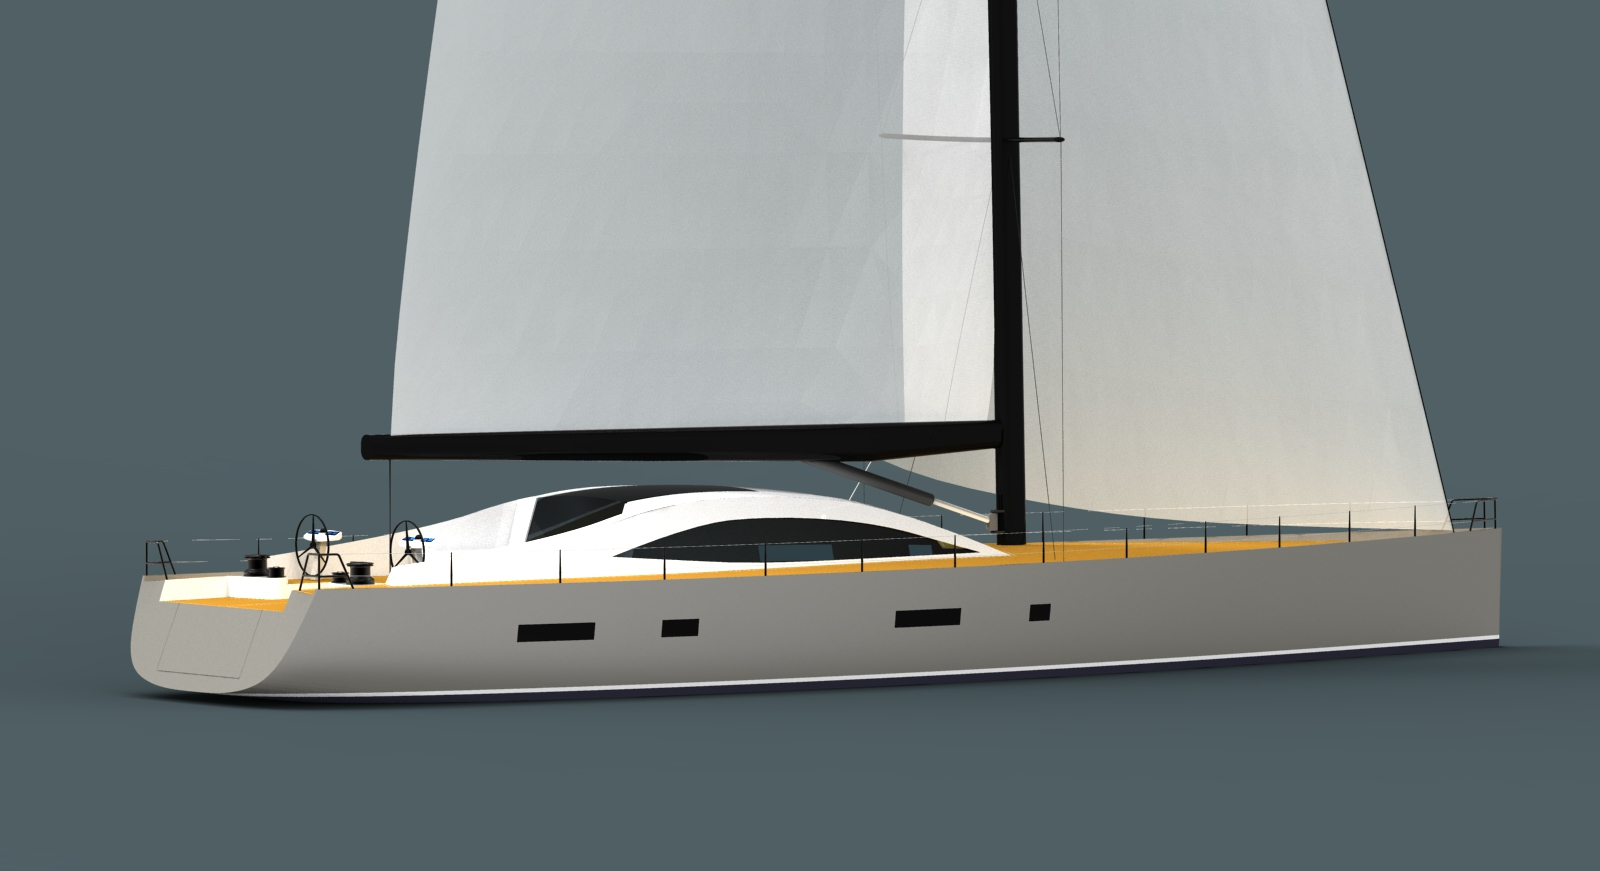 Owen Clarke are designers who deliver fast custom cruising boat, advanced sailboat and superyacht design with style and reliability derived from our offshore and ocean racing background. This 30m blue water cruising design is at the upper end of what is considered a cruising yacht, and at the lower end in terms of size for a superyacht.